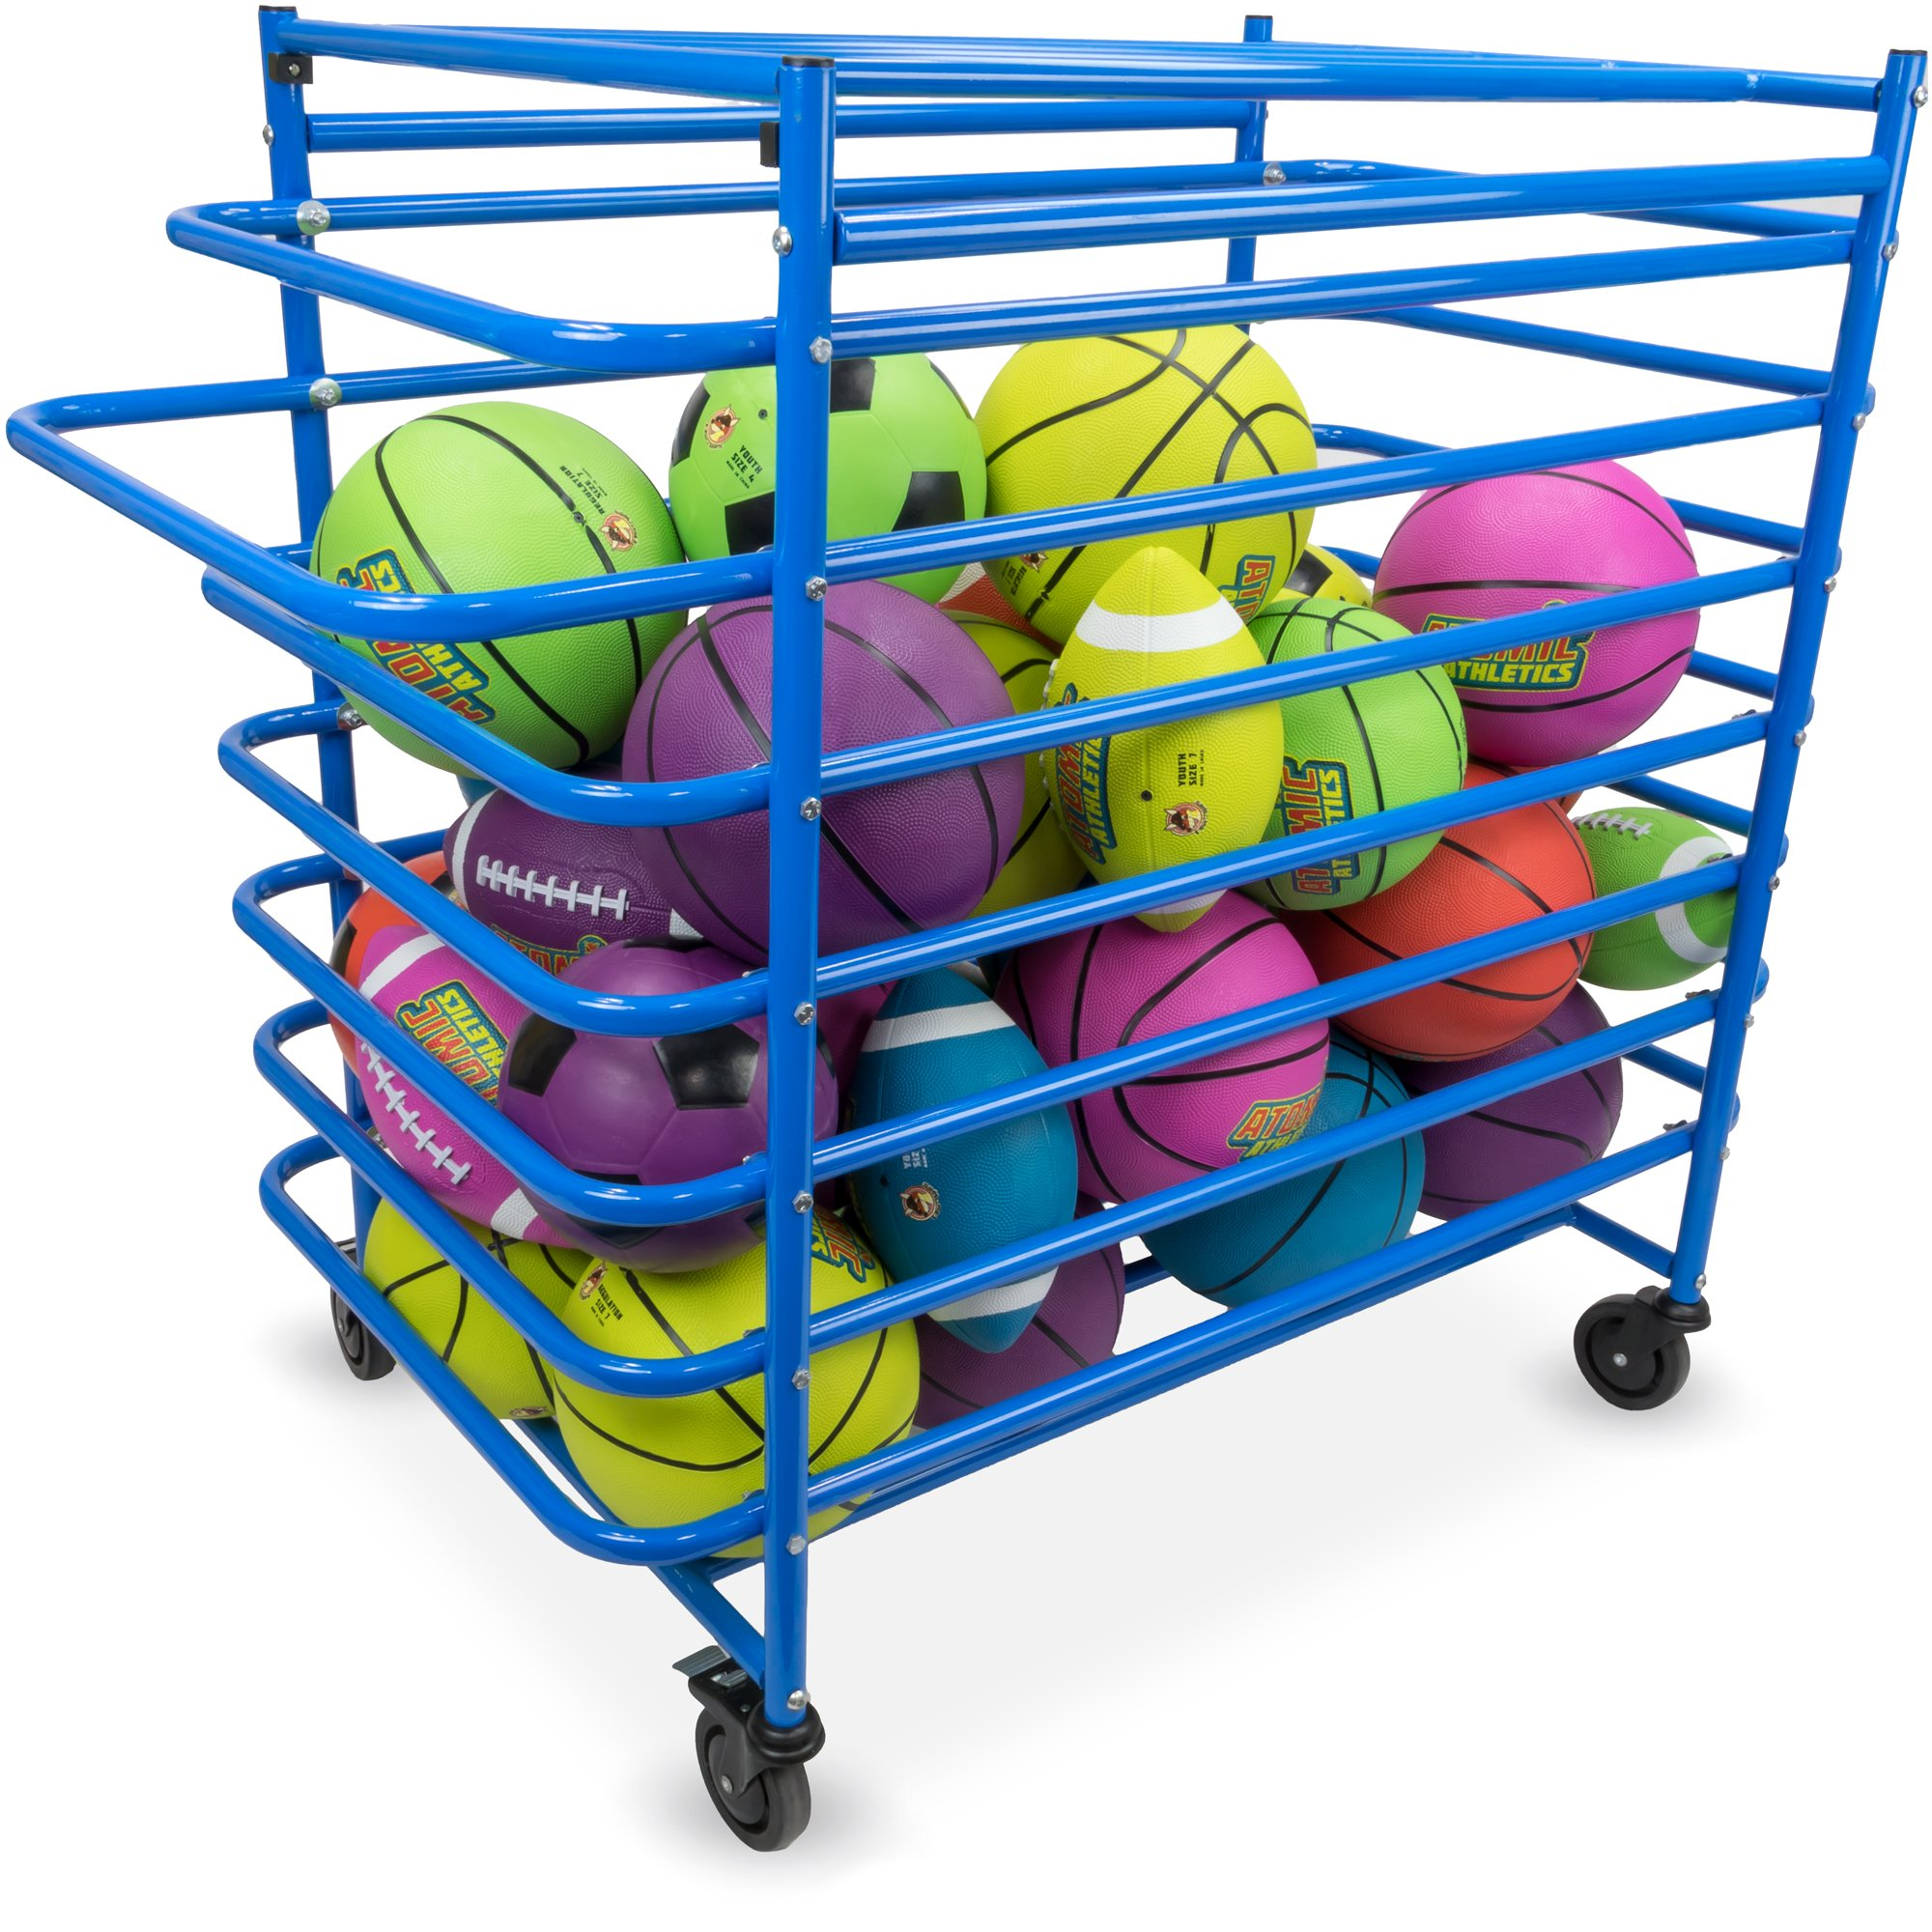 Crown Sporting Goods Metal Sports Ball Cage - Multi-Sport Steel Frame Ball Locker with Caster Wheels and Lock